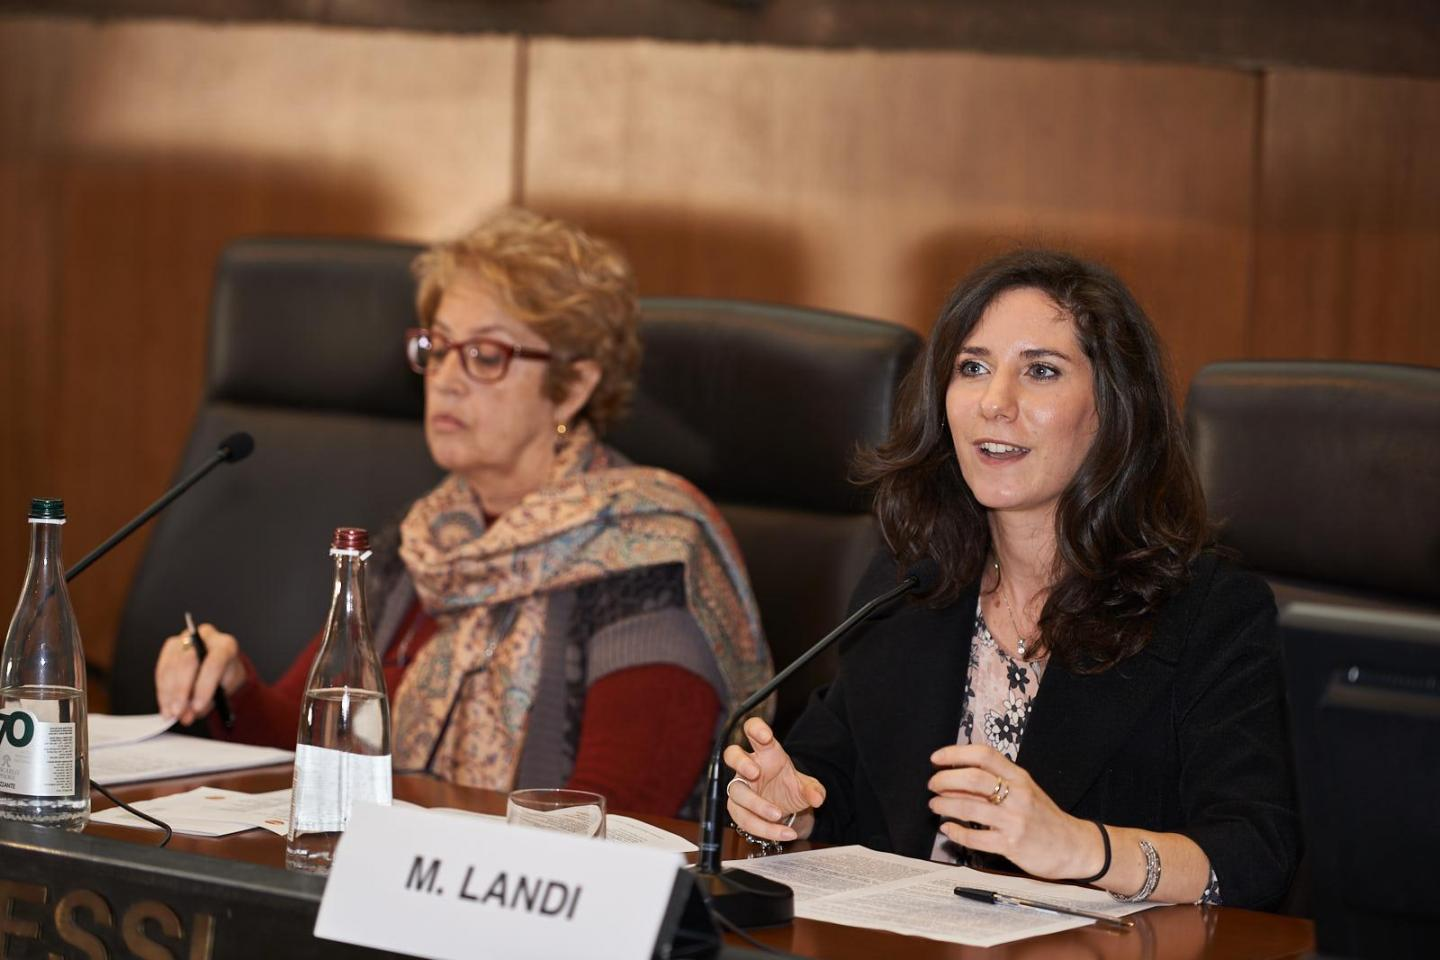 Martina Landi, Editor in charge of Gariwo